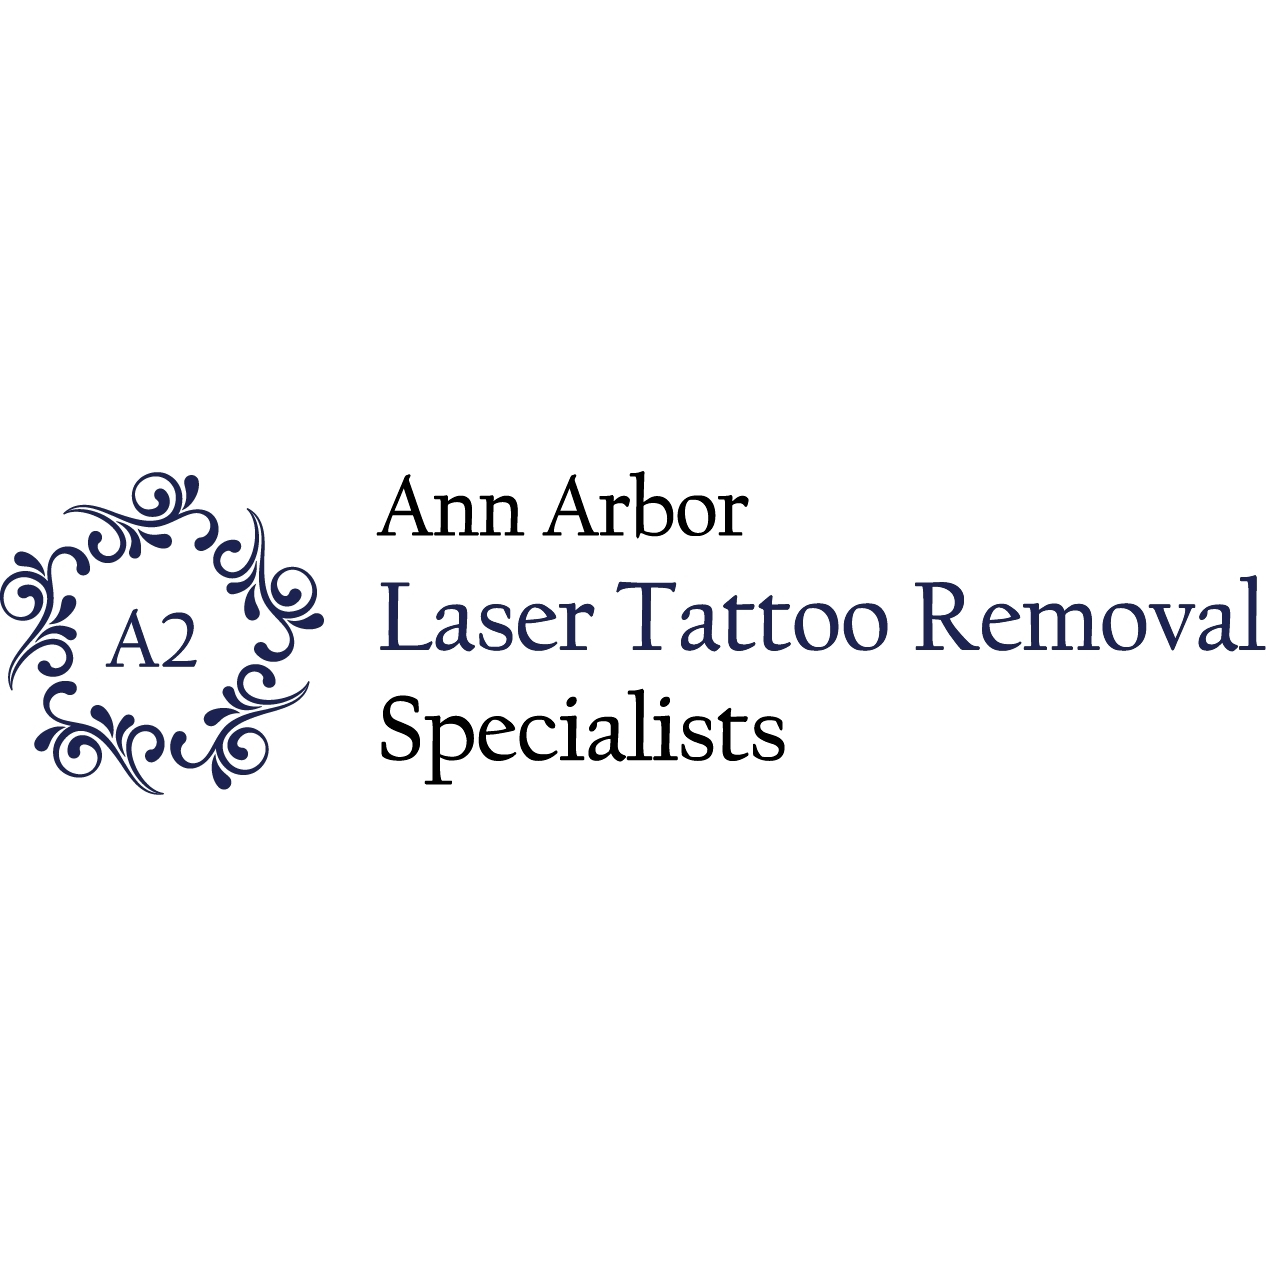 Ann Arbor Laser Tattoo Removal Specialists, PLLC